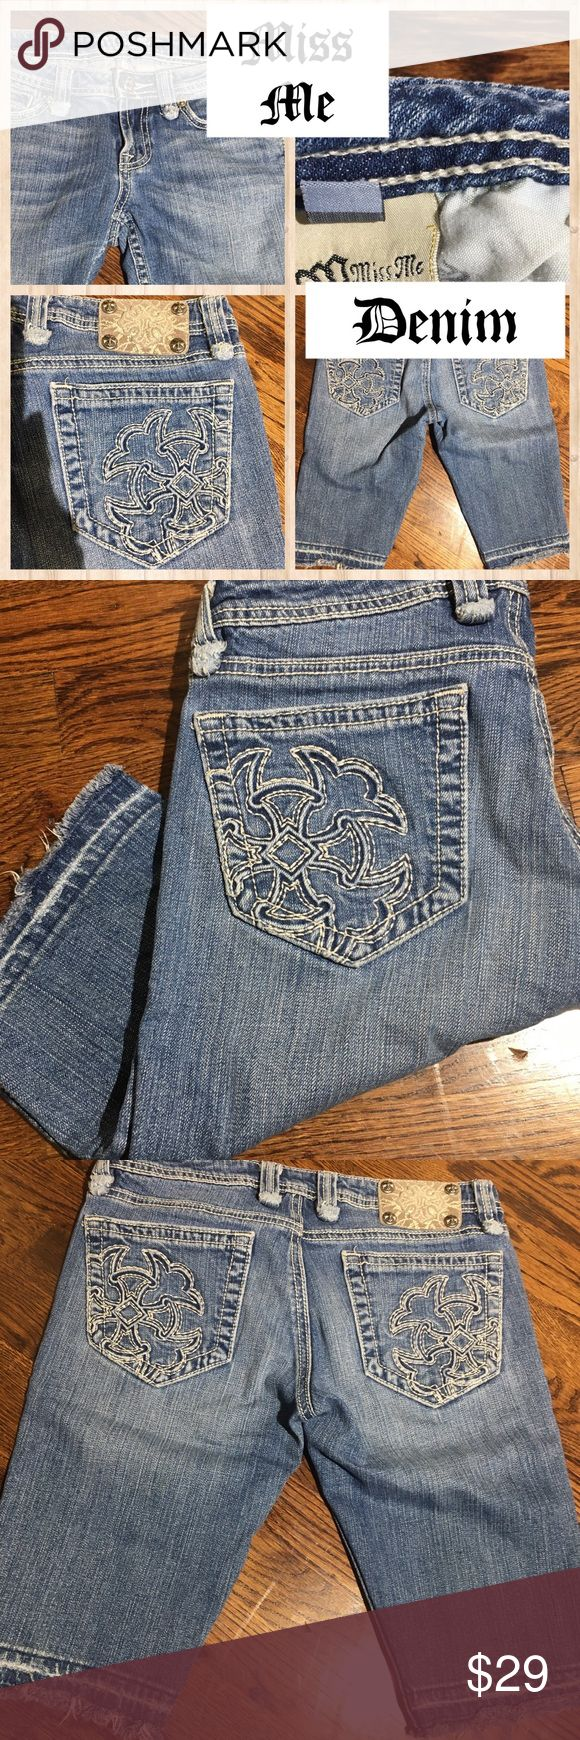 """Miss Me Denim Bermuda Shorts Size 28"""" Miss Me Denim Bermuda Shorts with Factory Let out Hem. Factory frayed belt loops for a distressed look! Just the right amount of embellishment for the latest trend. Back pocket embroidery detailing in a Celtic cross type pattern. No rhinestone Bling. Light wash denim Size 28"""" Miss Me Shorts Bermudas"""